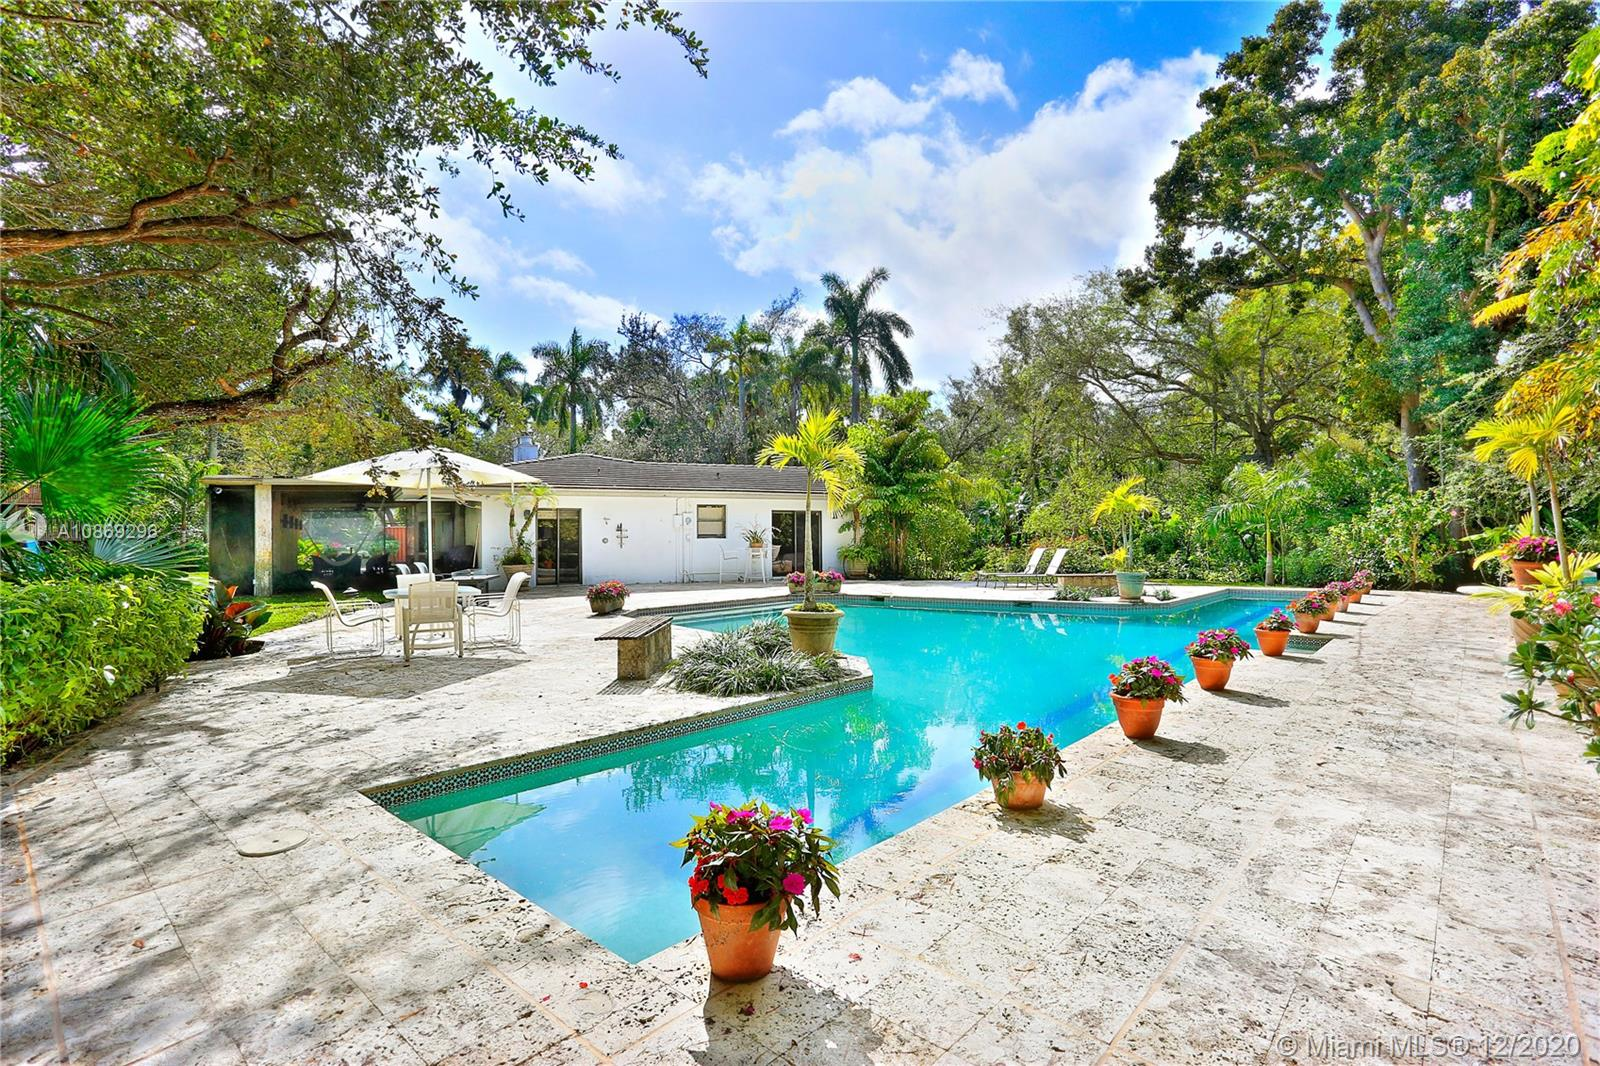 Exciting opportunity to design and build your dream home in the newly approved gated community with private security, Hammock Lakes II. This generous 31,799 sf lot is tucked away and perfect for those who seek exclusivity and enjoy restful ambiance and sophistication. Located in a family friendly Coral Gables neighborhood just minutes from A+ rated public and private schools, parks with biking trails, and a wide variety of dining pleasures and boutique shops. Your ideal lifestyle awaits. Charming existing home is surrounded by mature trees, lush landscaping, and features a pool, fireplace and 2 car garage.